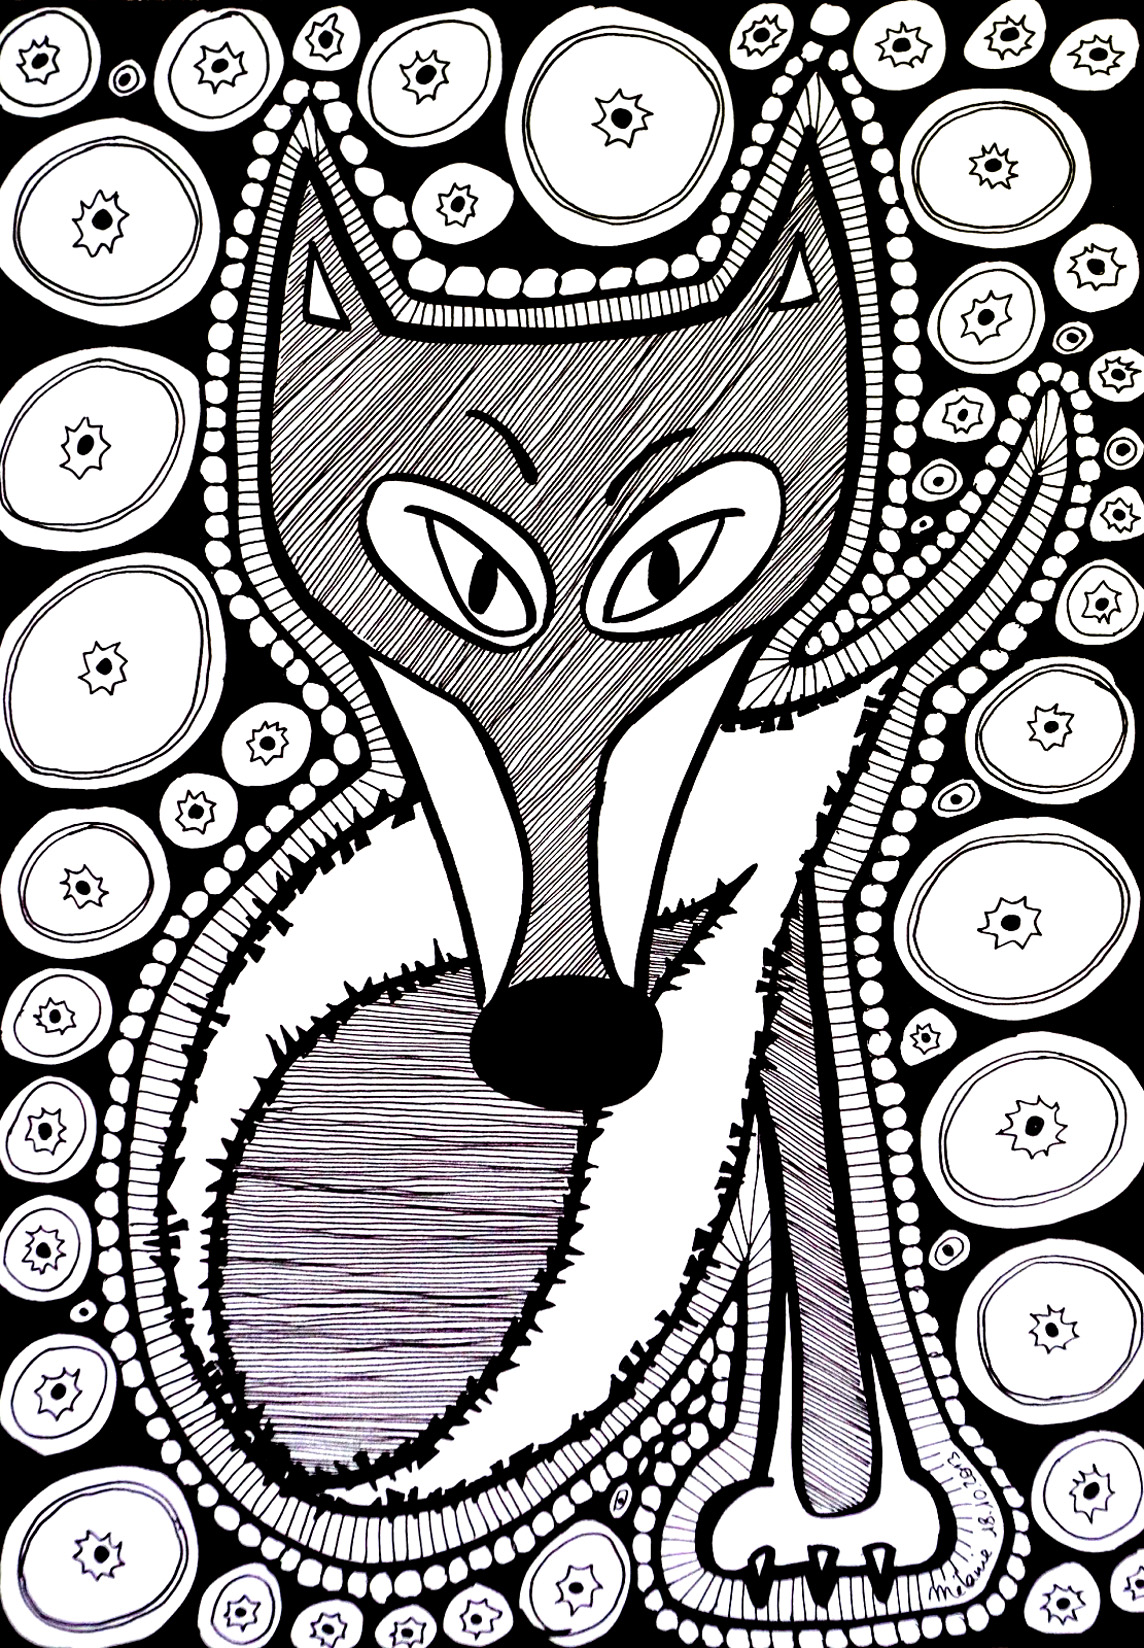 Black & white drawing of a fox composed of many elements and shapes, color it by choosing colors representing your mood